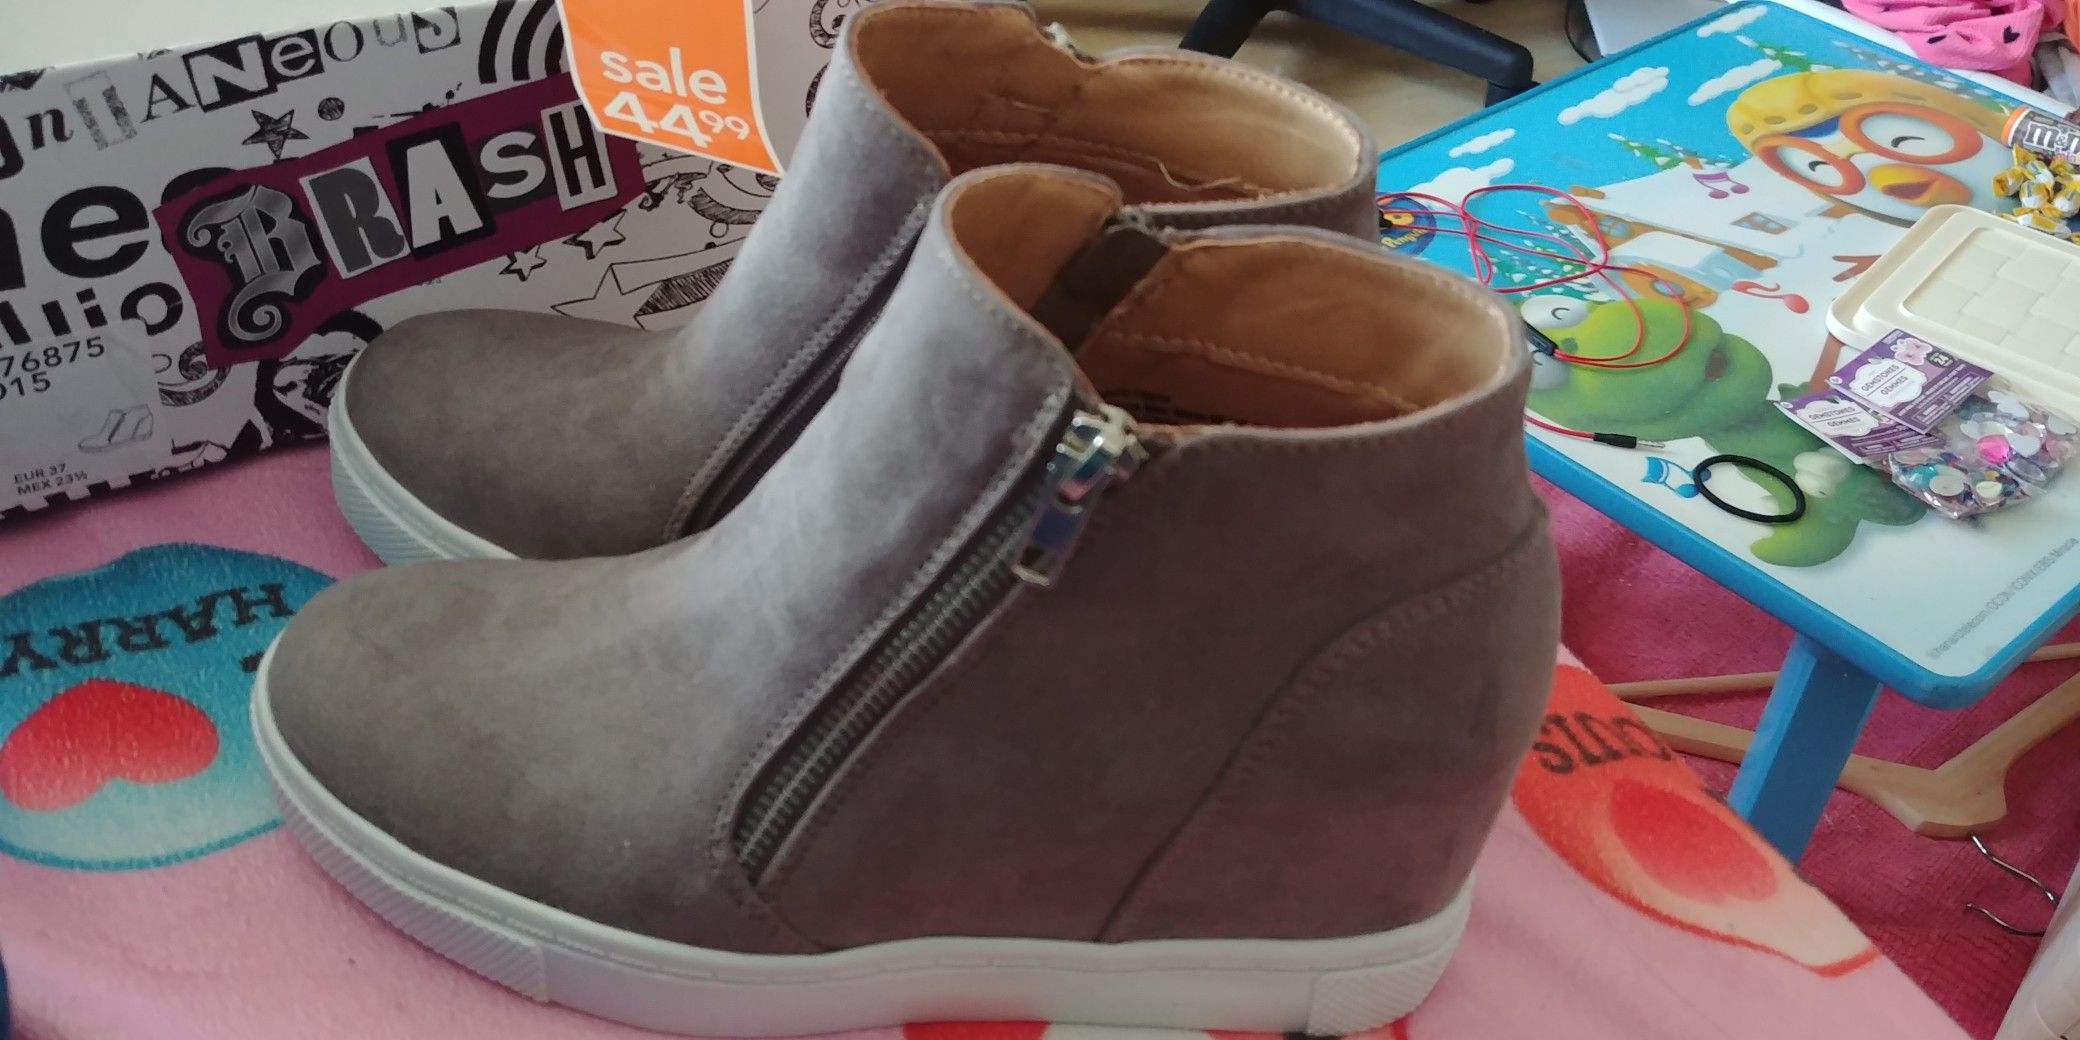 347ba2efe3c My Brand New Brash Grey CeCe Hidden Wedge Casual Sneakers That I Bought  Today From Payless ShoeSource   Coquitlam Centre Mall!